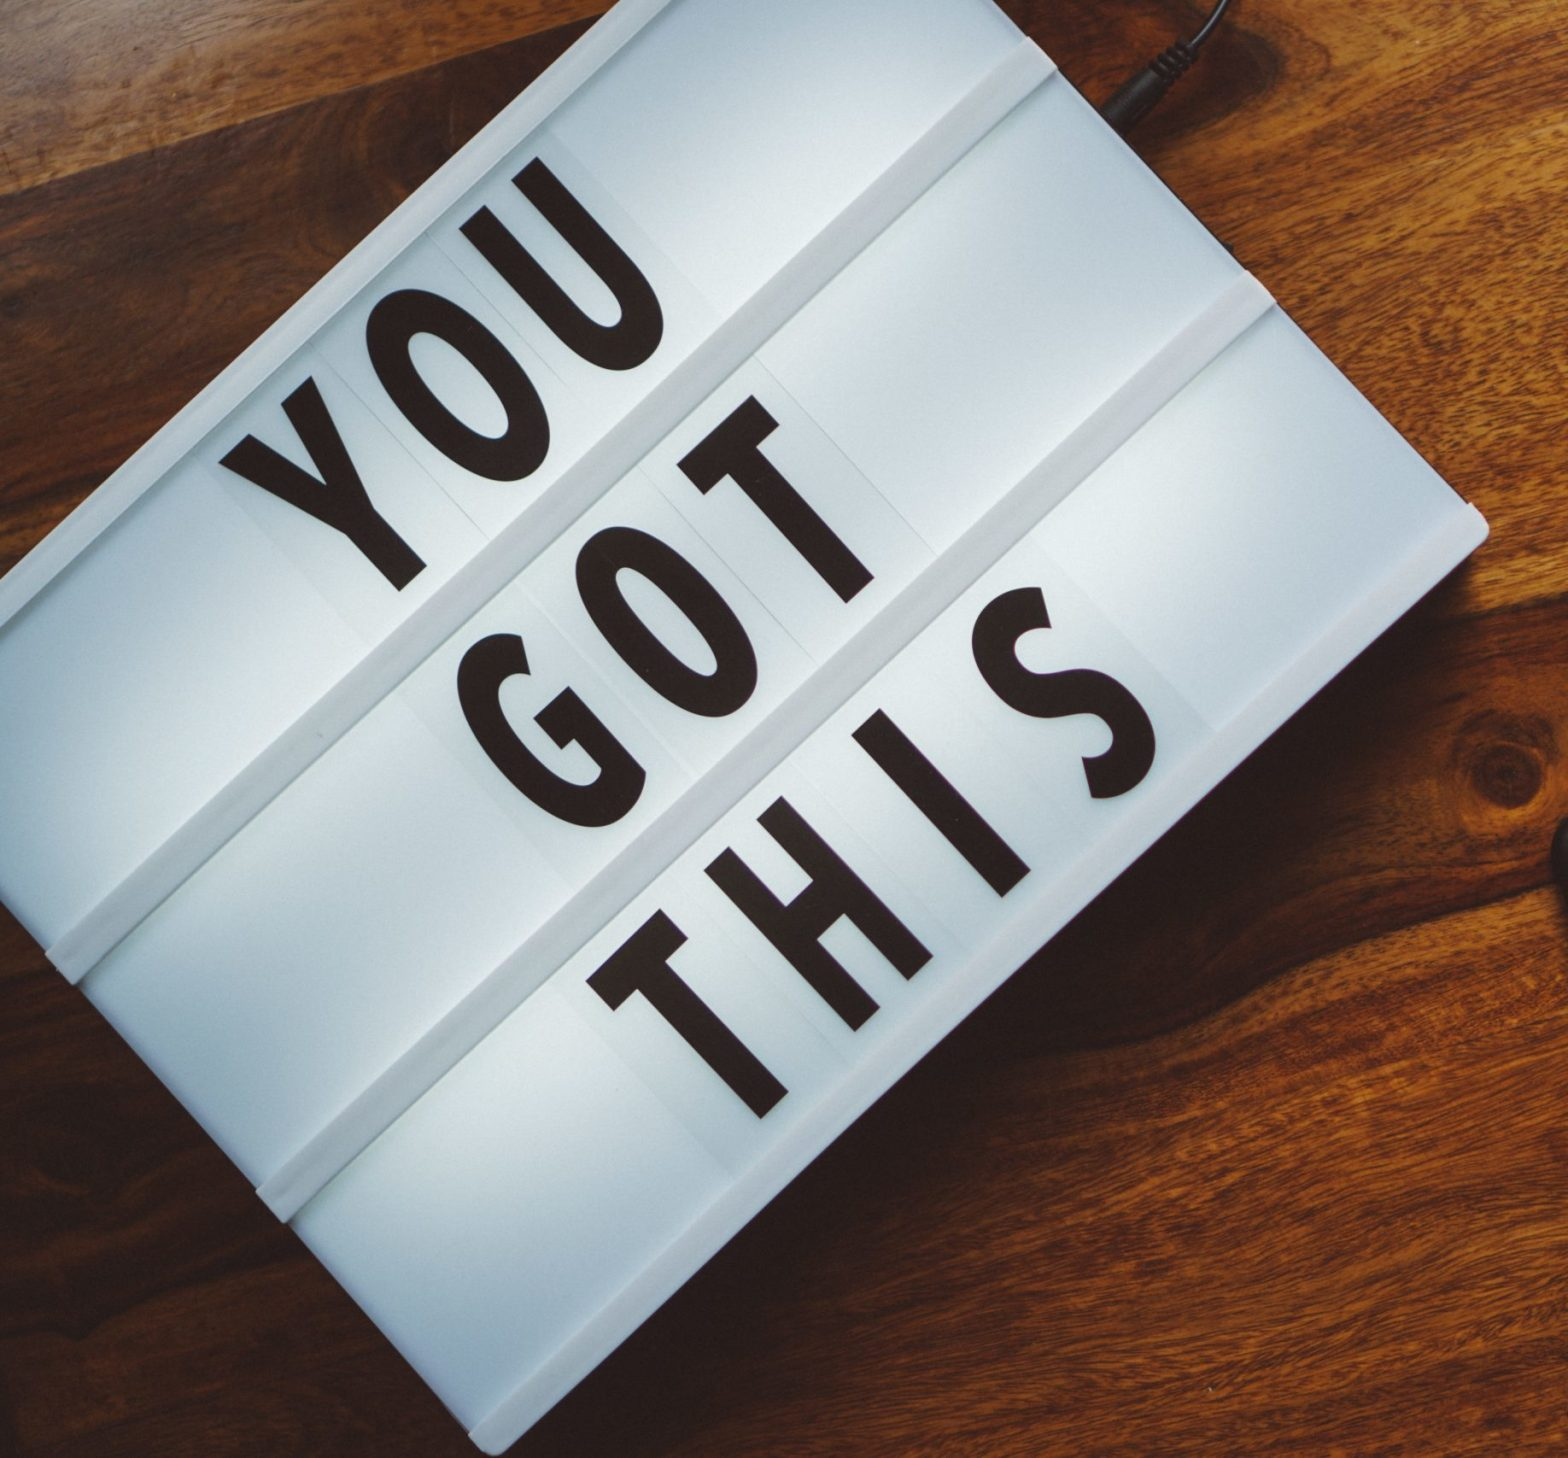 """It is a sign that says """"You got this"""". This is a motivation for tips to achieve your goals."""